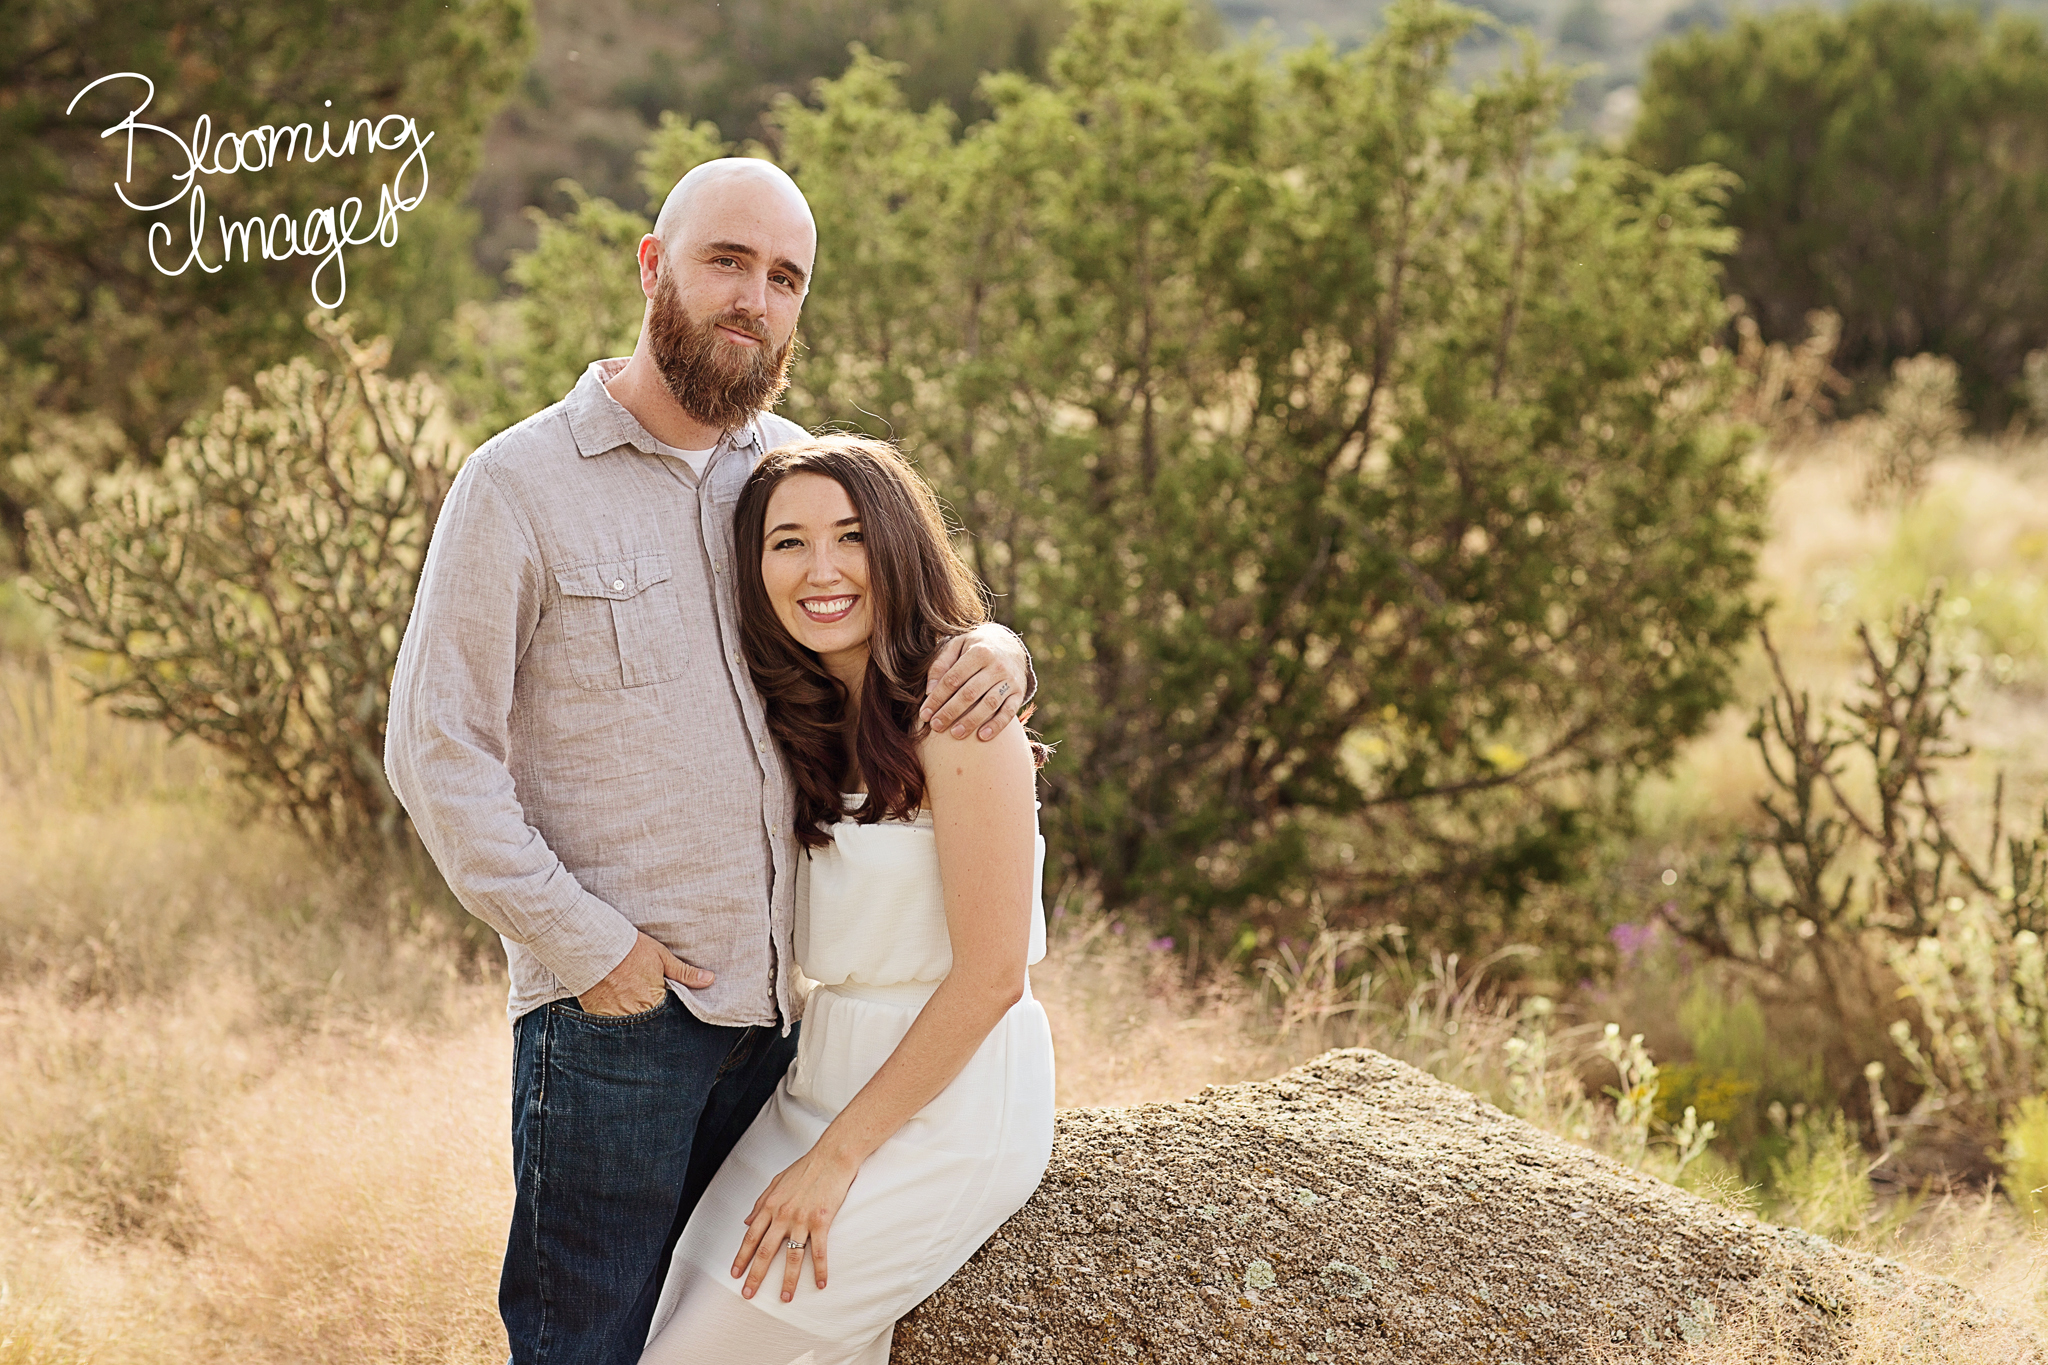 Albuquerque-family-photographer